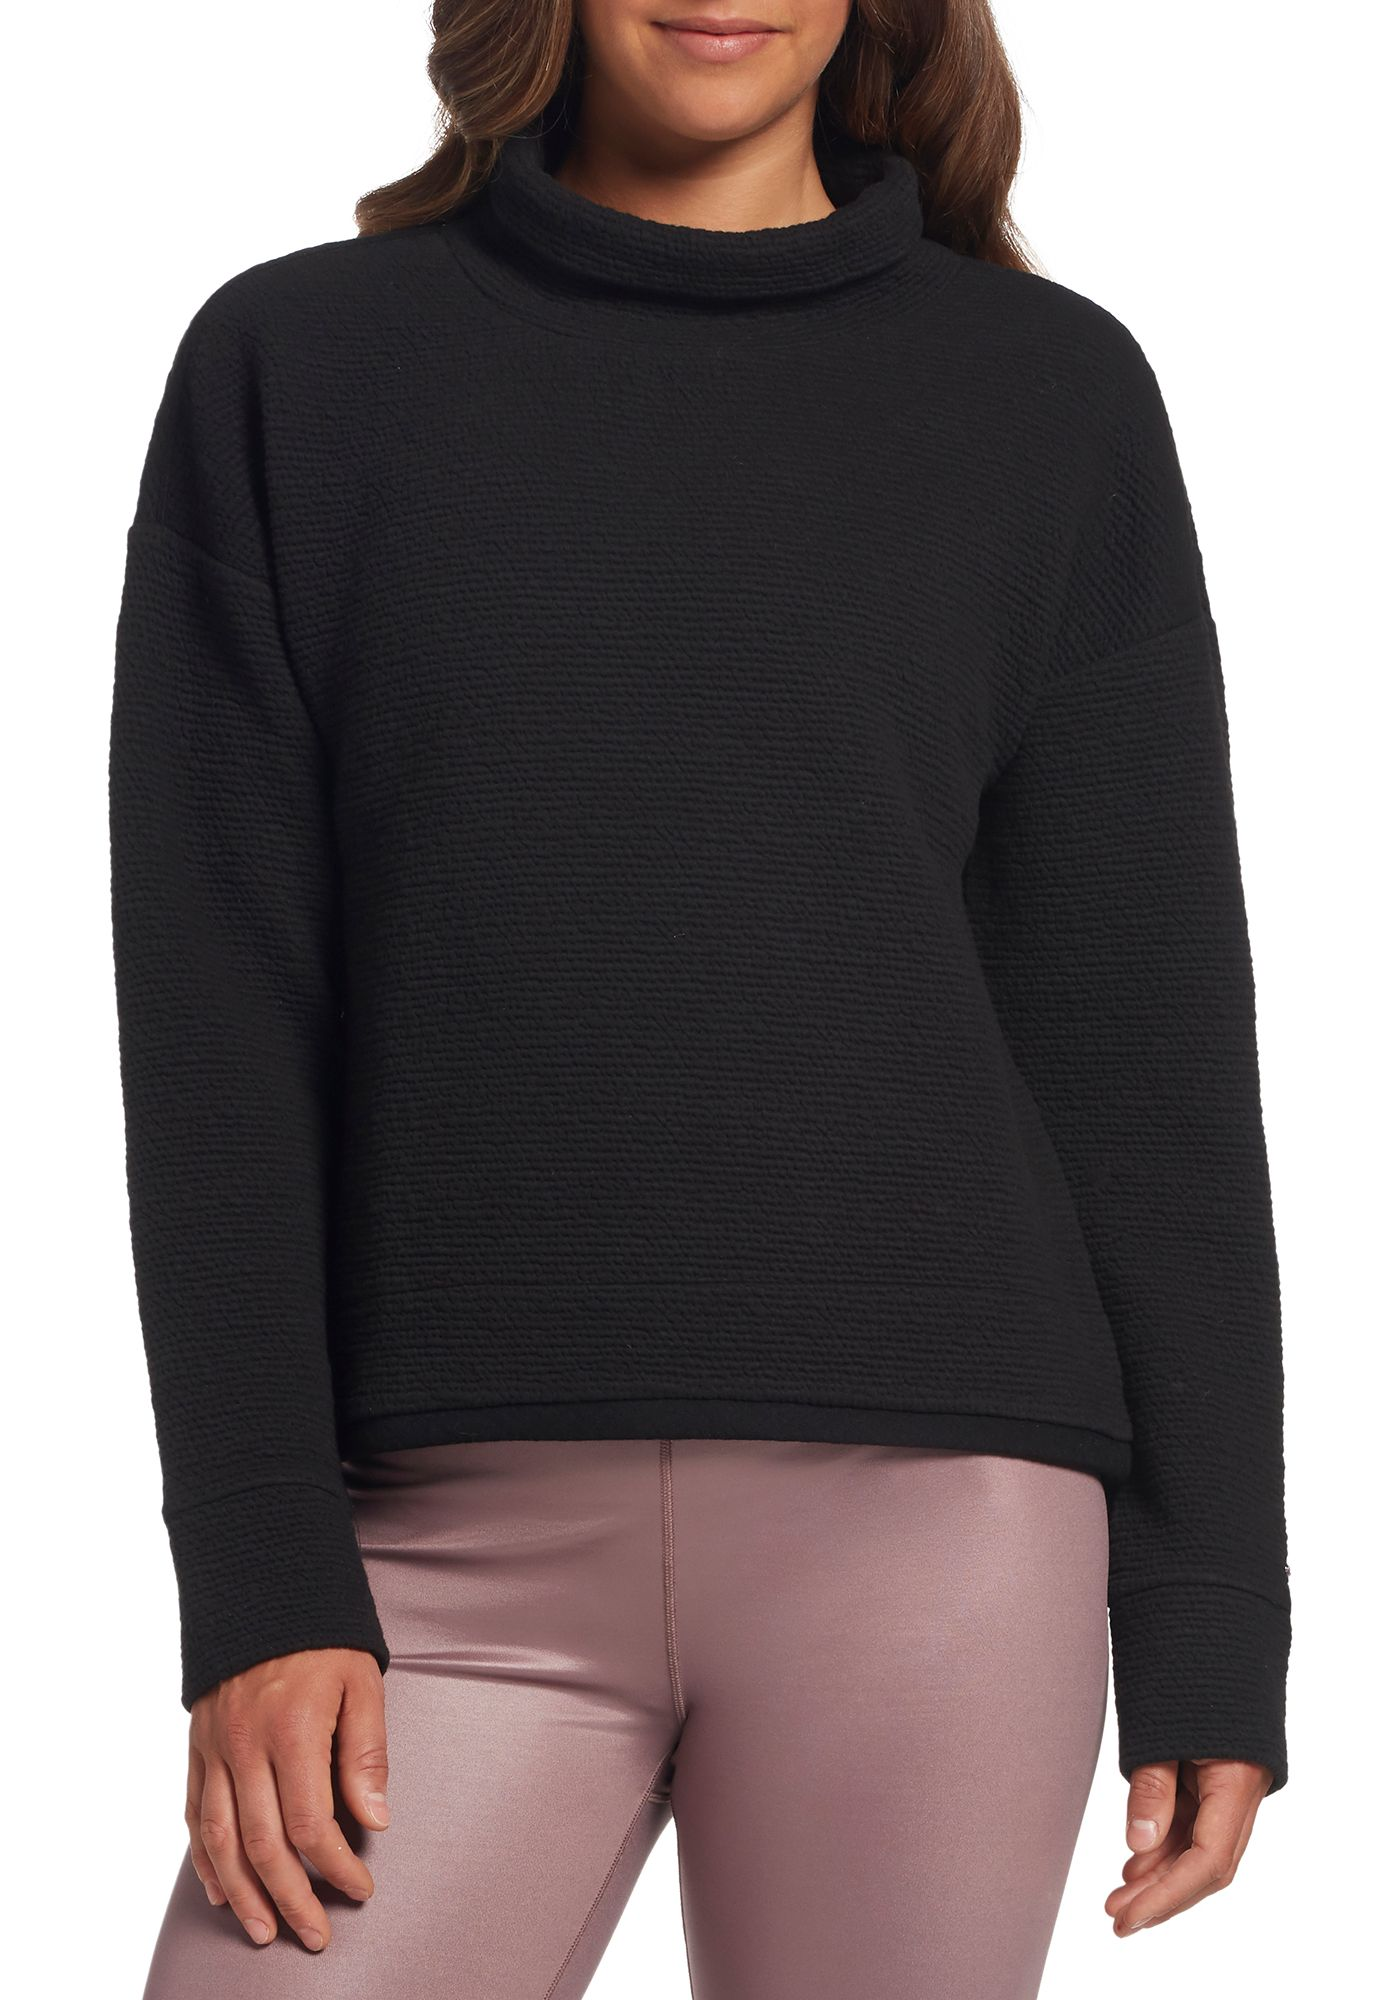 CALIA by Carrie Underwood Women's Cloud Funnel Neck Pullover